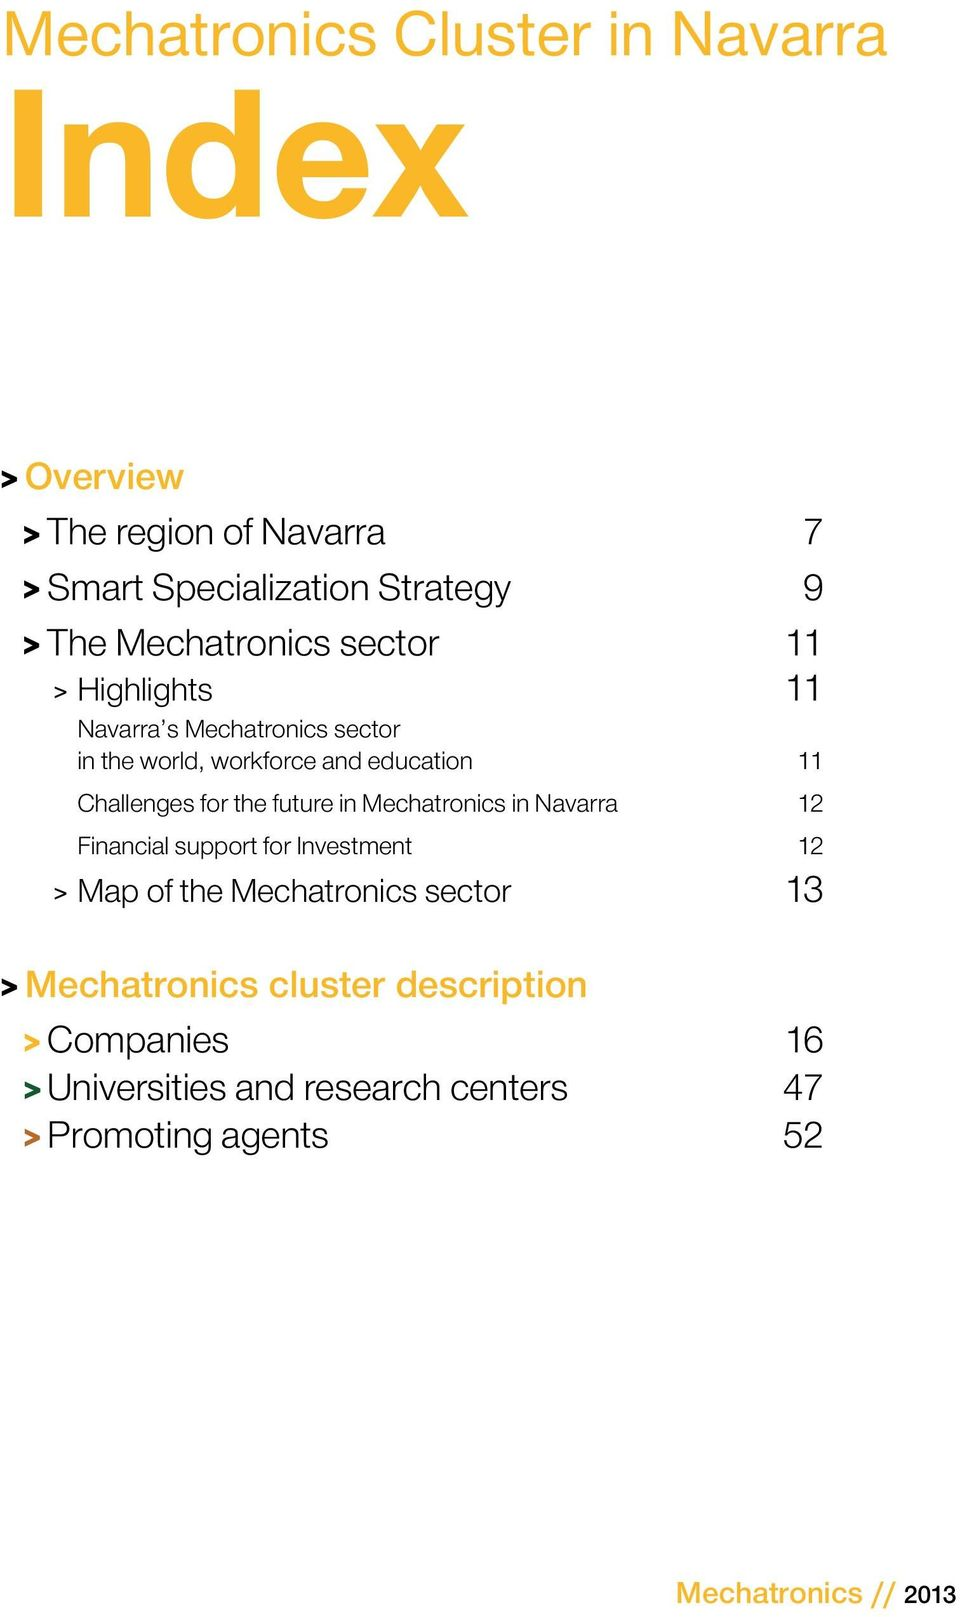 the future in Mechatronics in Navarra 12 Financial support for Investment 12 > > Map of the Mechatronics sector 13 > >